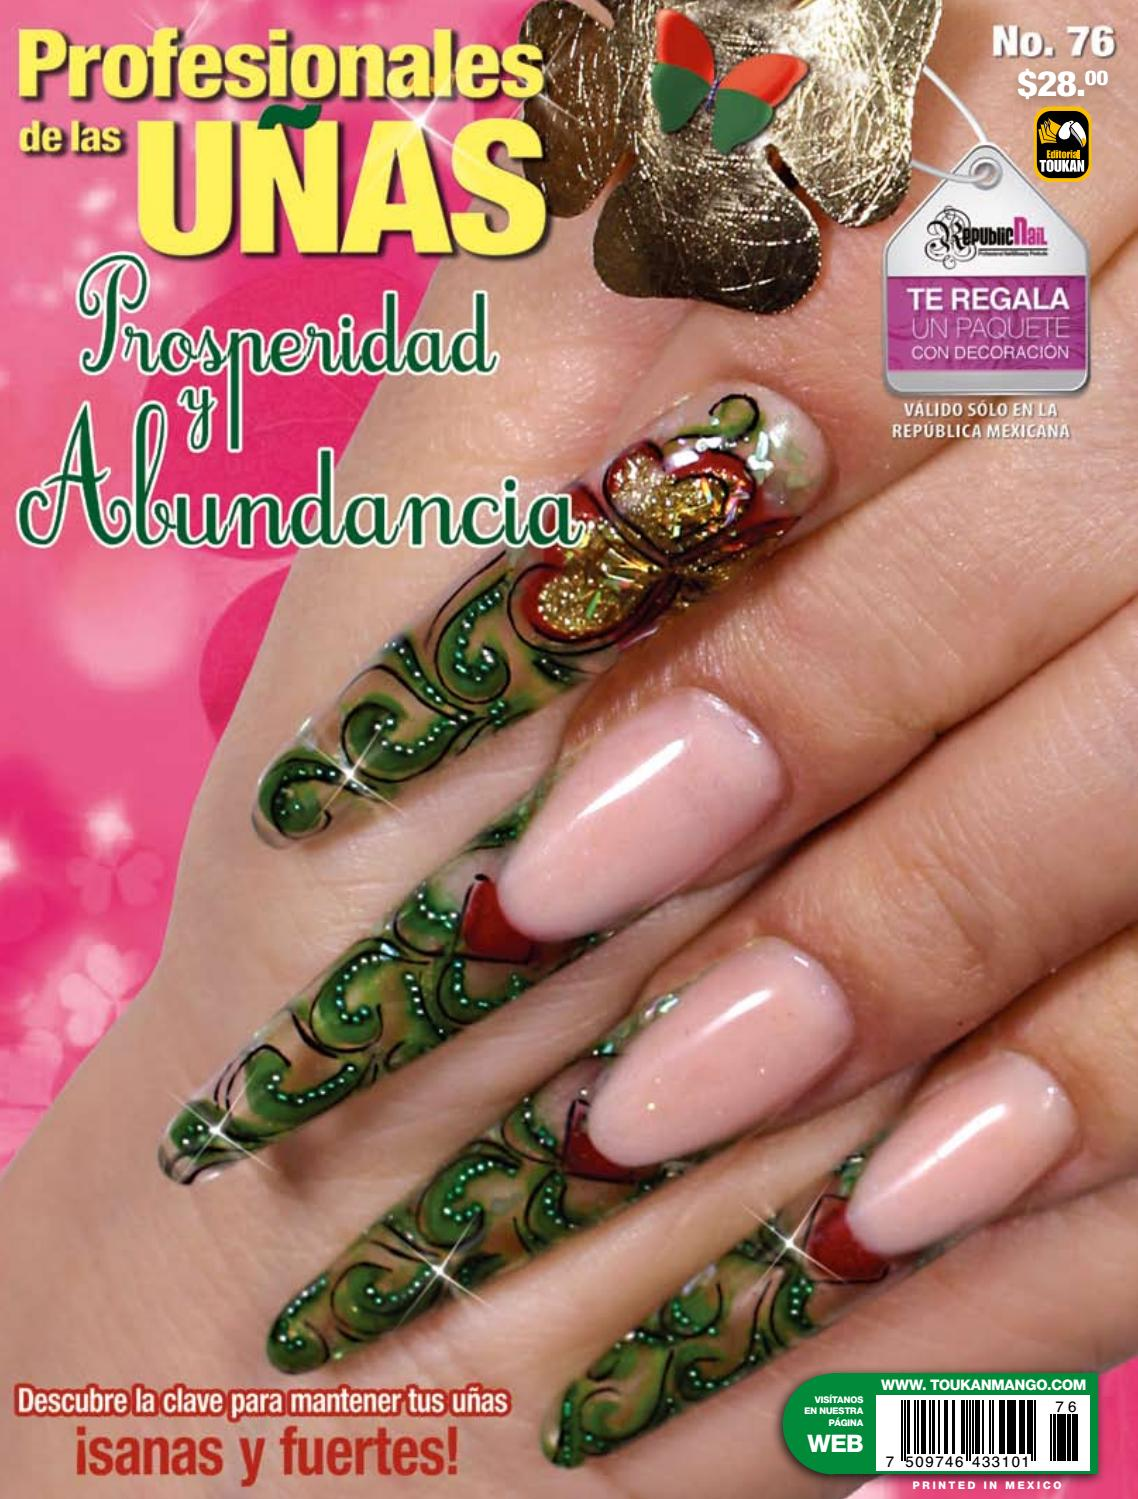 Profesionales de las uñas No. 76 by Editorial Toukan - issuu